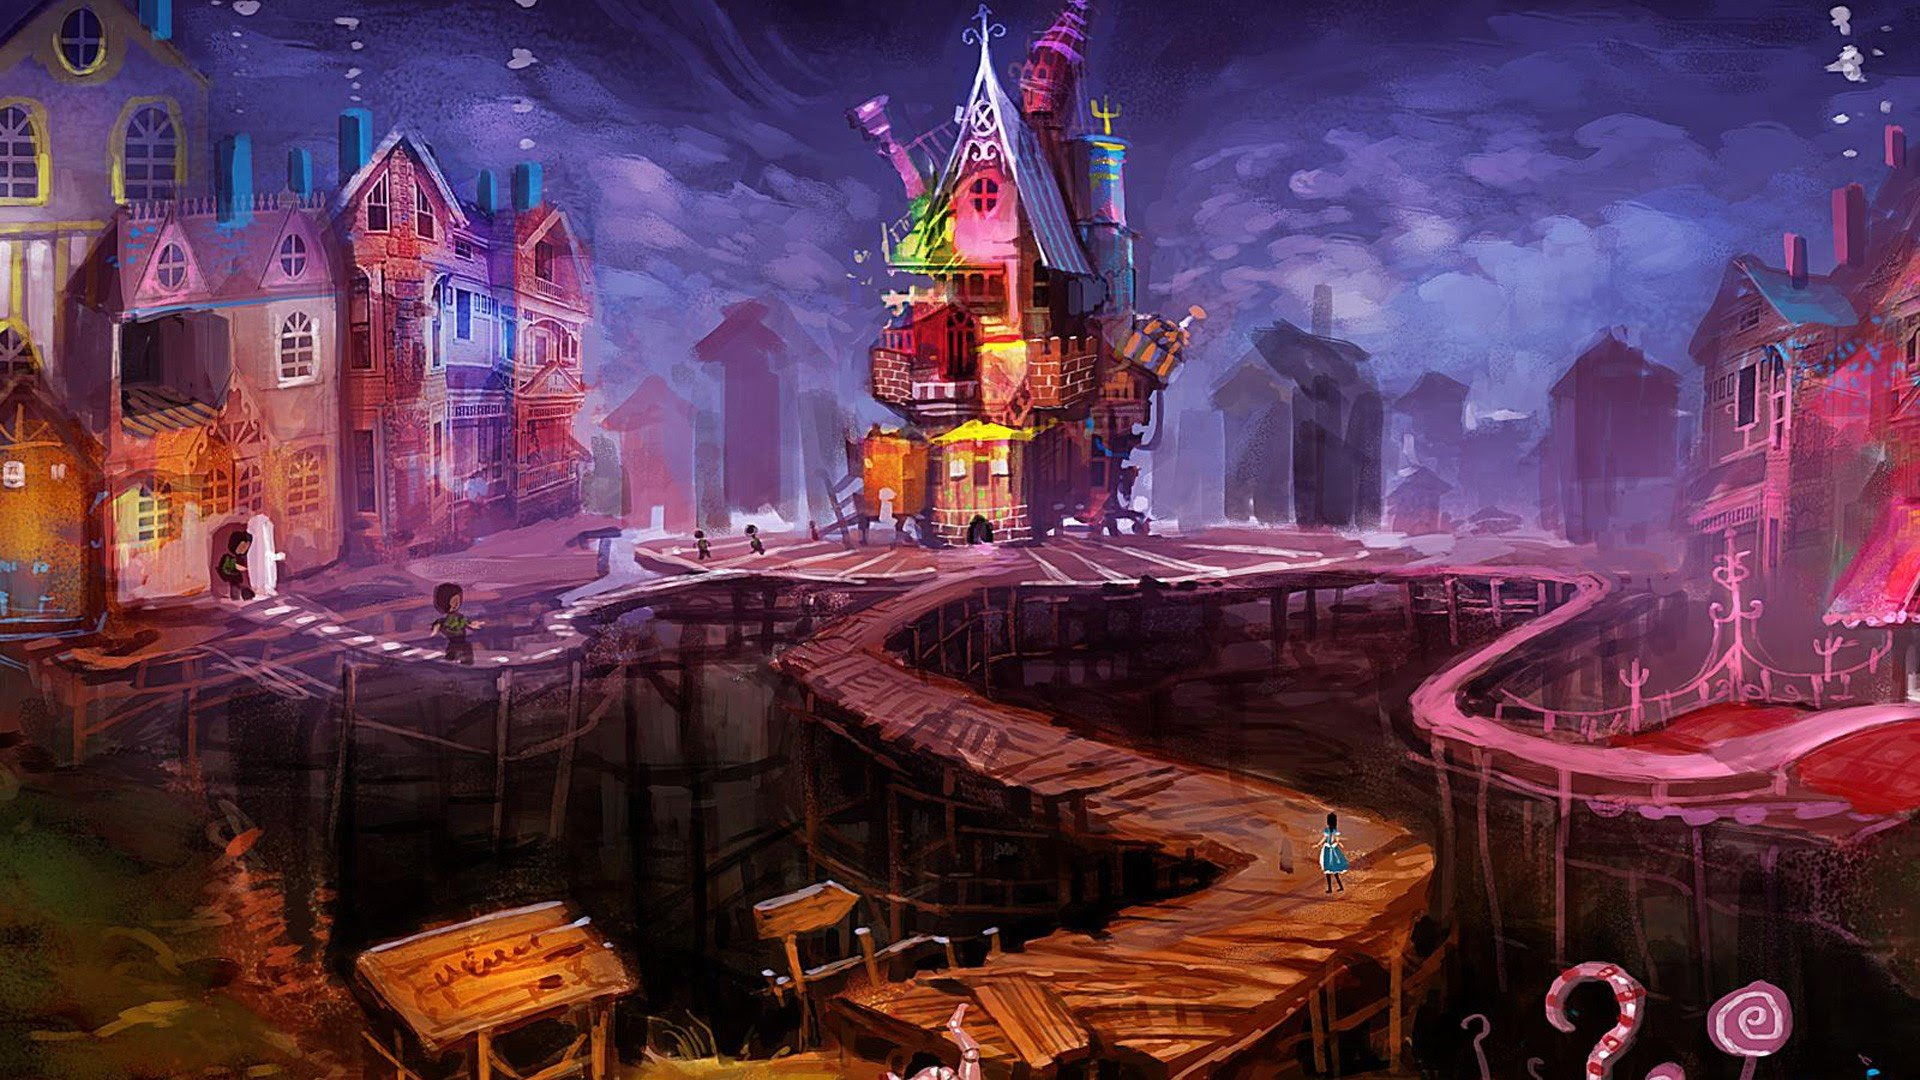 1920x1080 Px Alice Alice In Wonderland High Quality Wallpapers